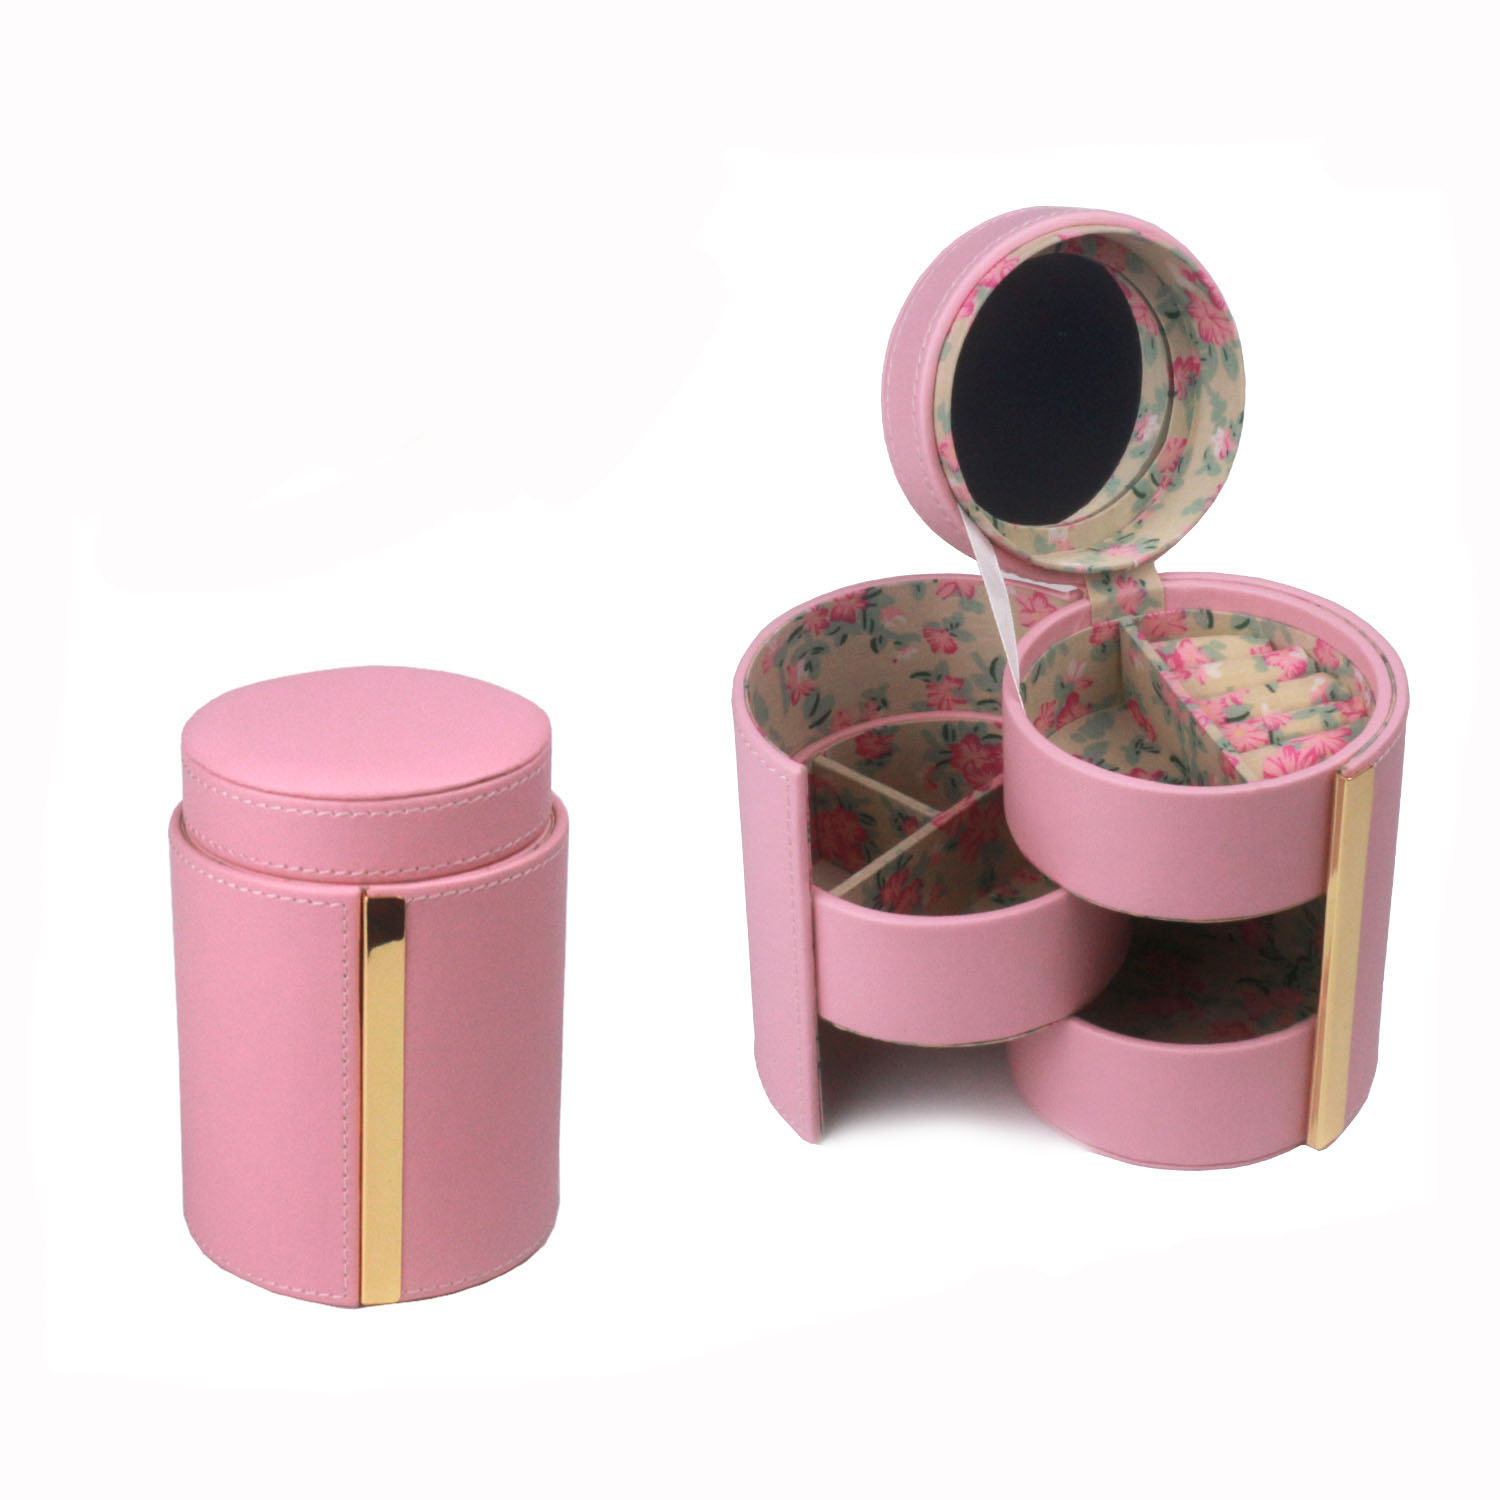 Pink round shaped three turnable box  jewelry box with metal fittings